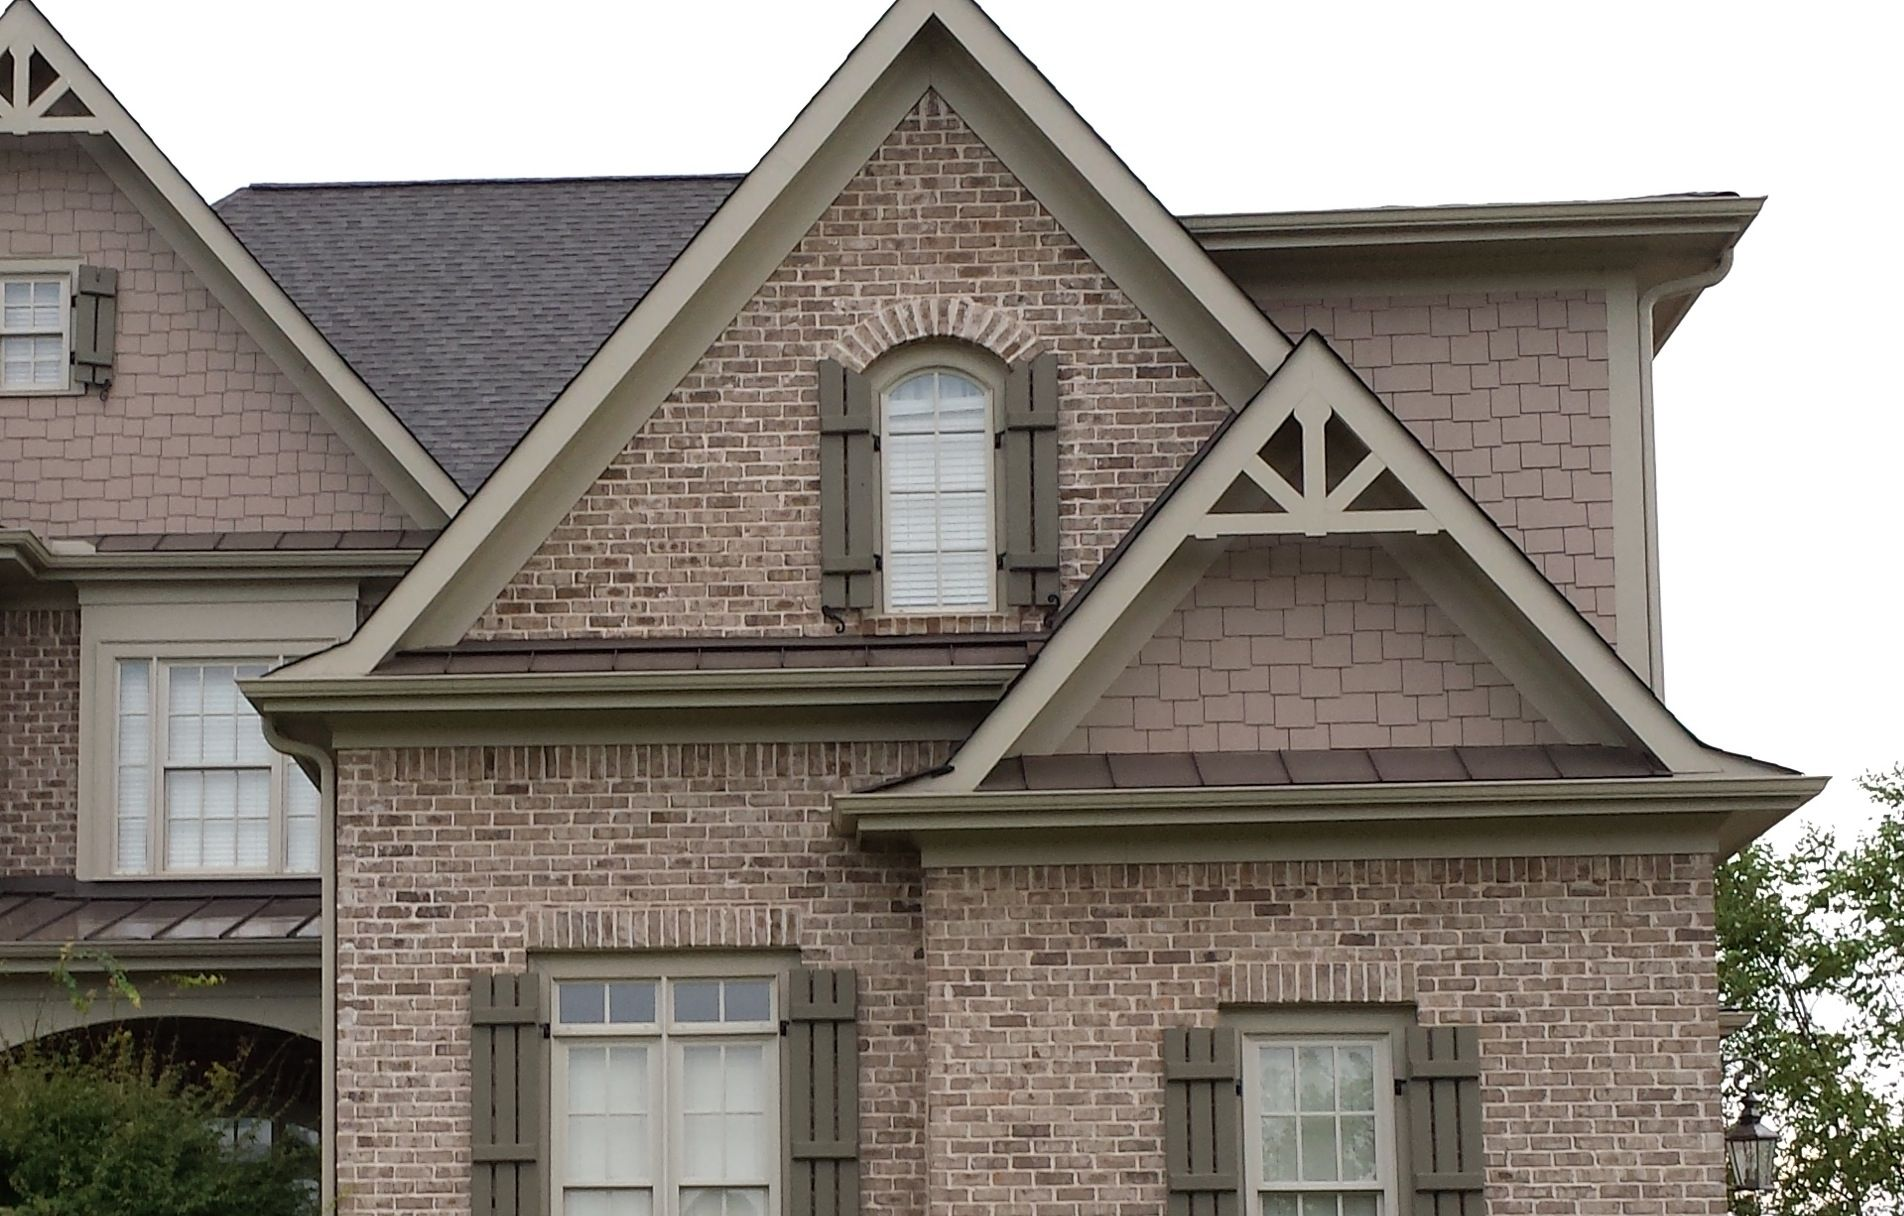 Decor Gable Decorations Reviewed Victoria Style House With Artistic Shapes  Like A House Built In The